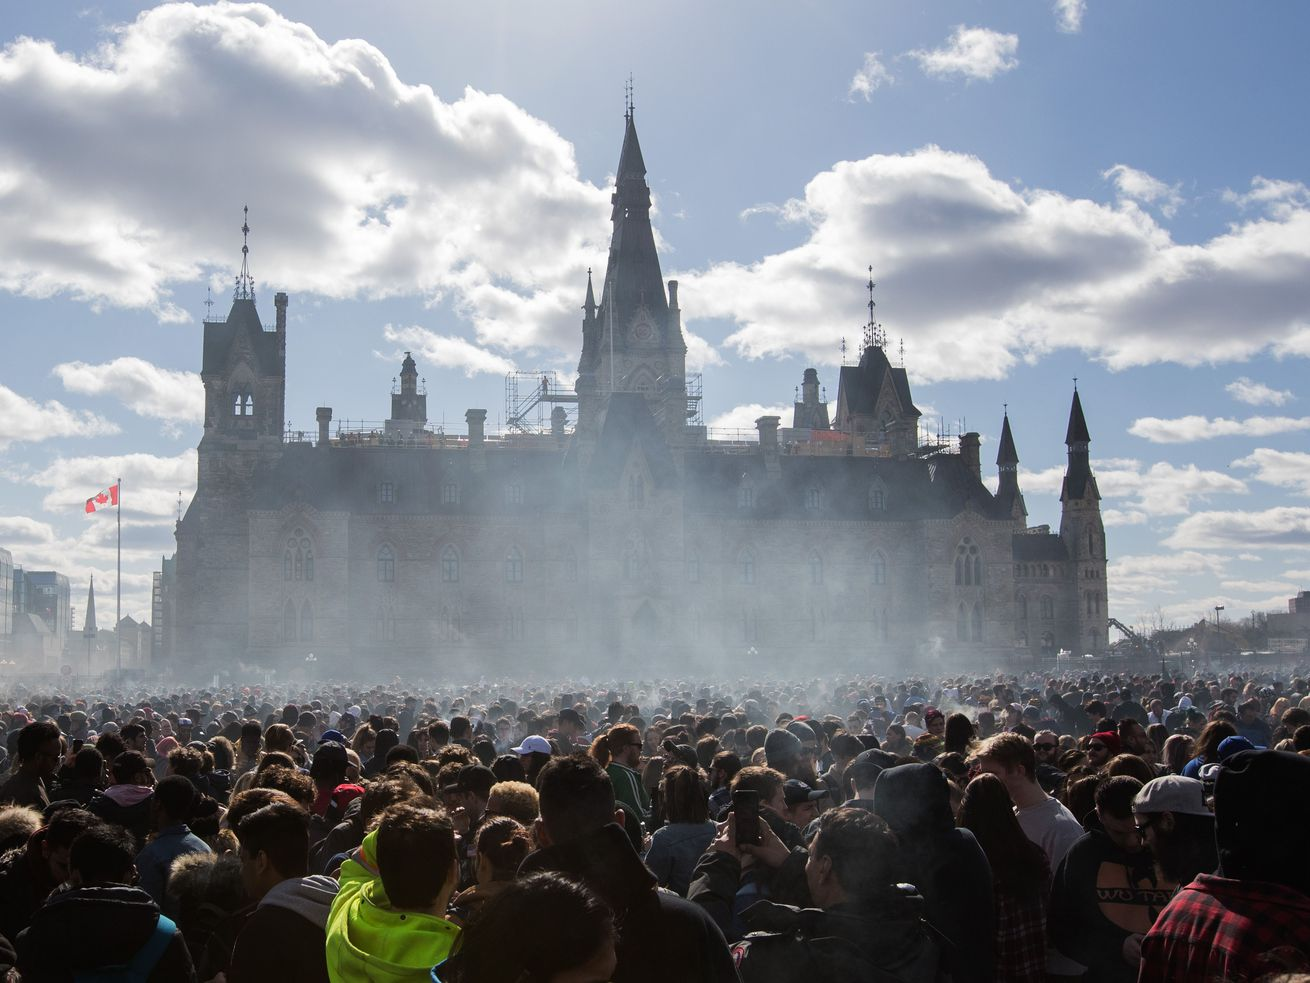 Marijuana smoke lingers in front of Parliament Hill during a 4/20 rally in Ottawa, Ontario, Canada.